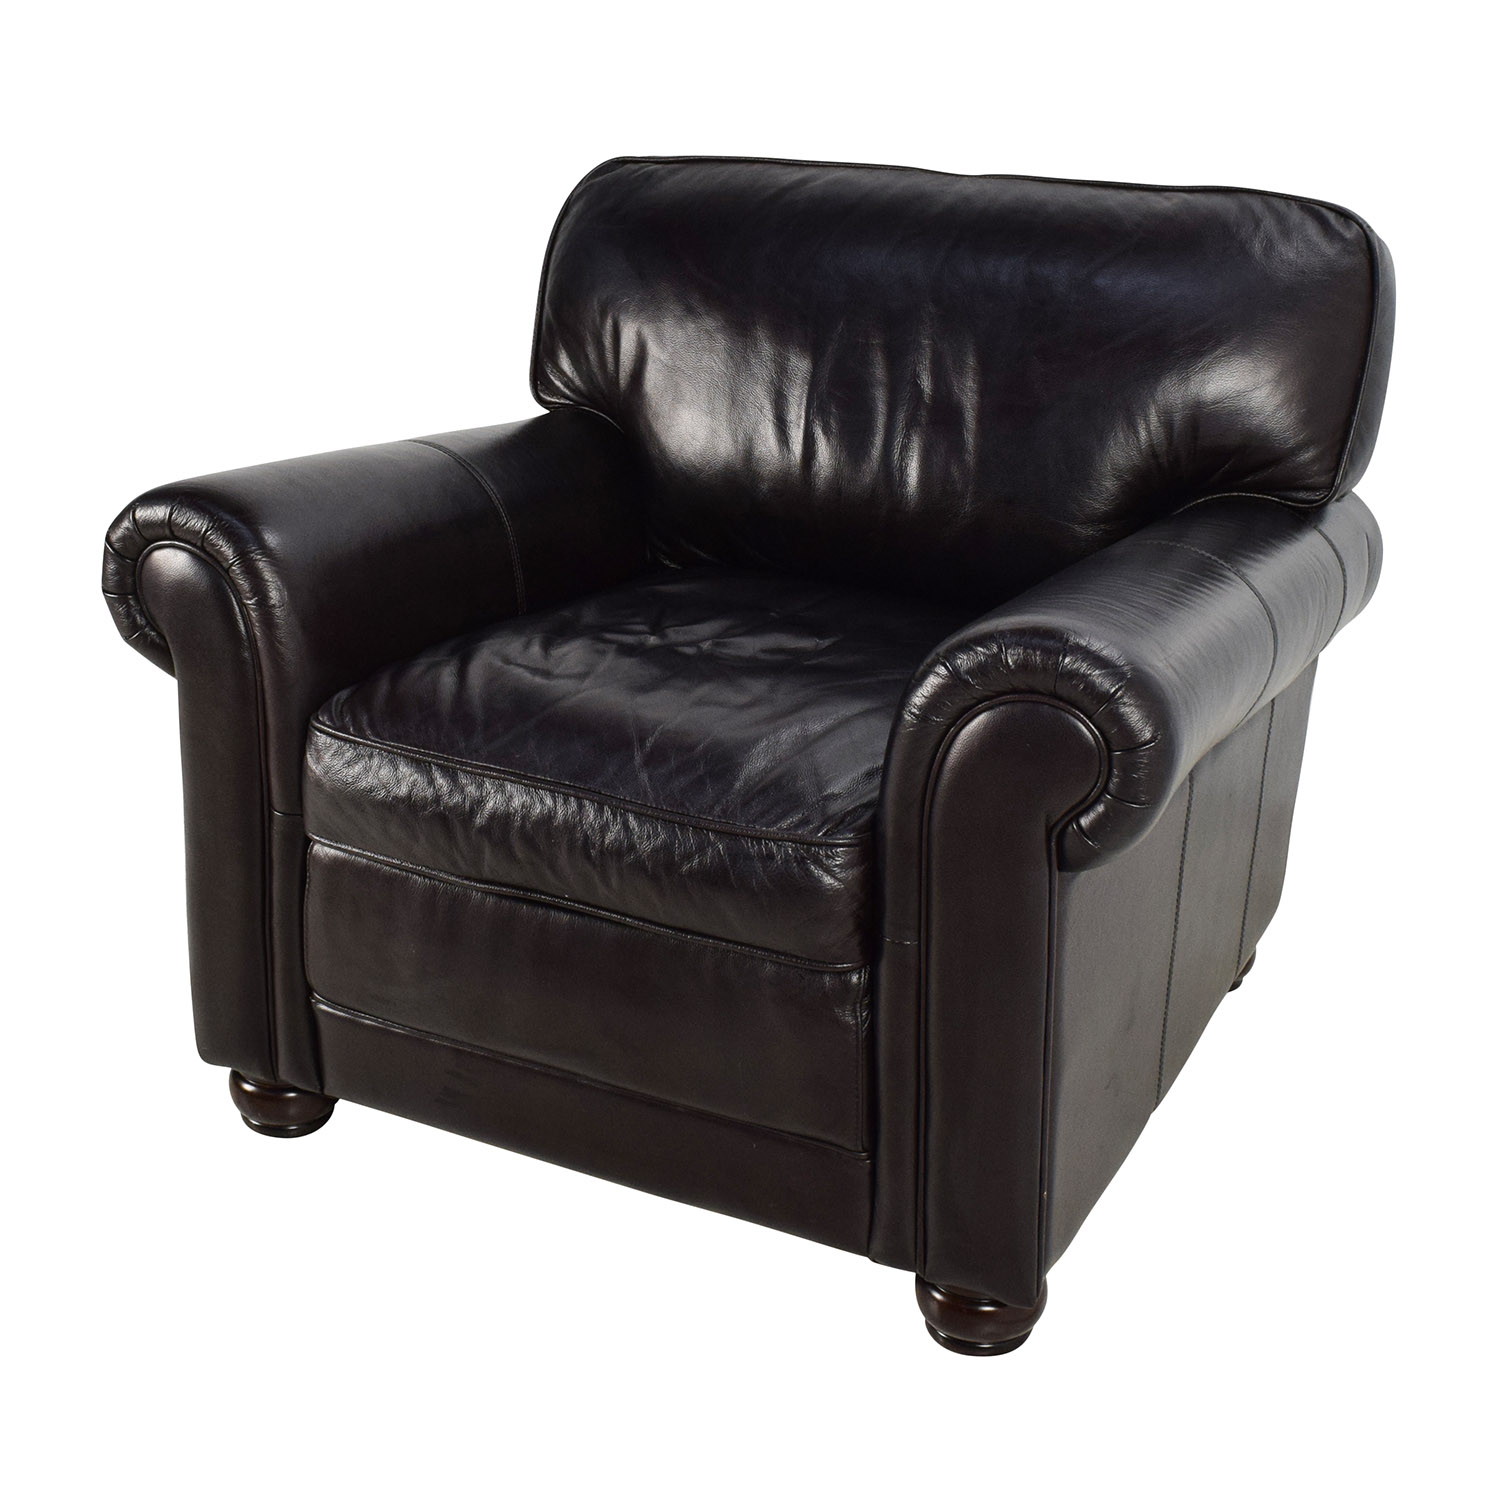 ... Bobu0027s Furniture Leather Dark Brown Chair Bobs Furniture ...  sc 1 st  Furnishare & 74% OFF - Bobs Furniture Bobu0027s Furniture Leather Dark Brown Chair ... islam-shia.org